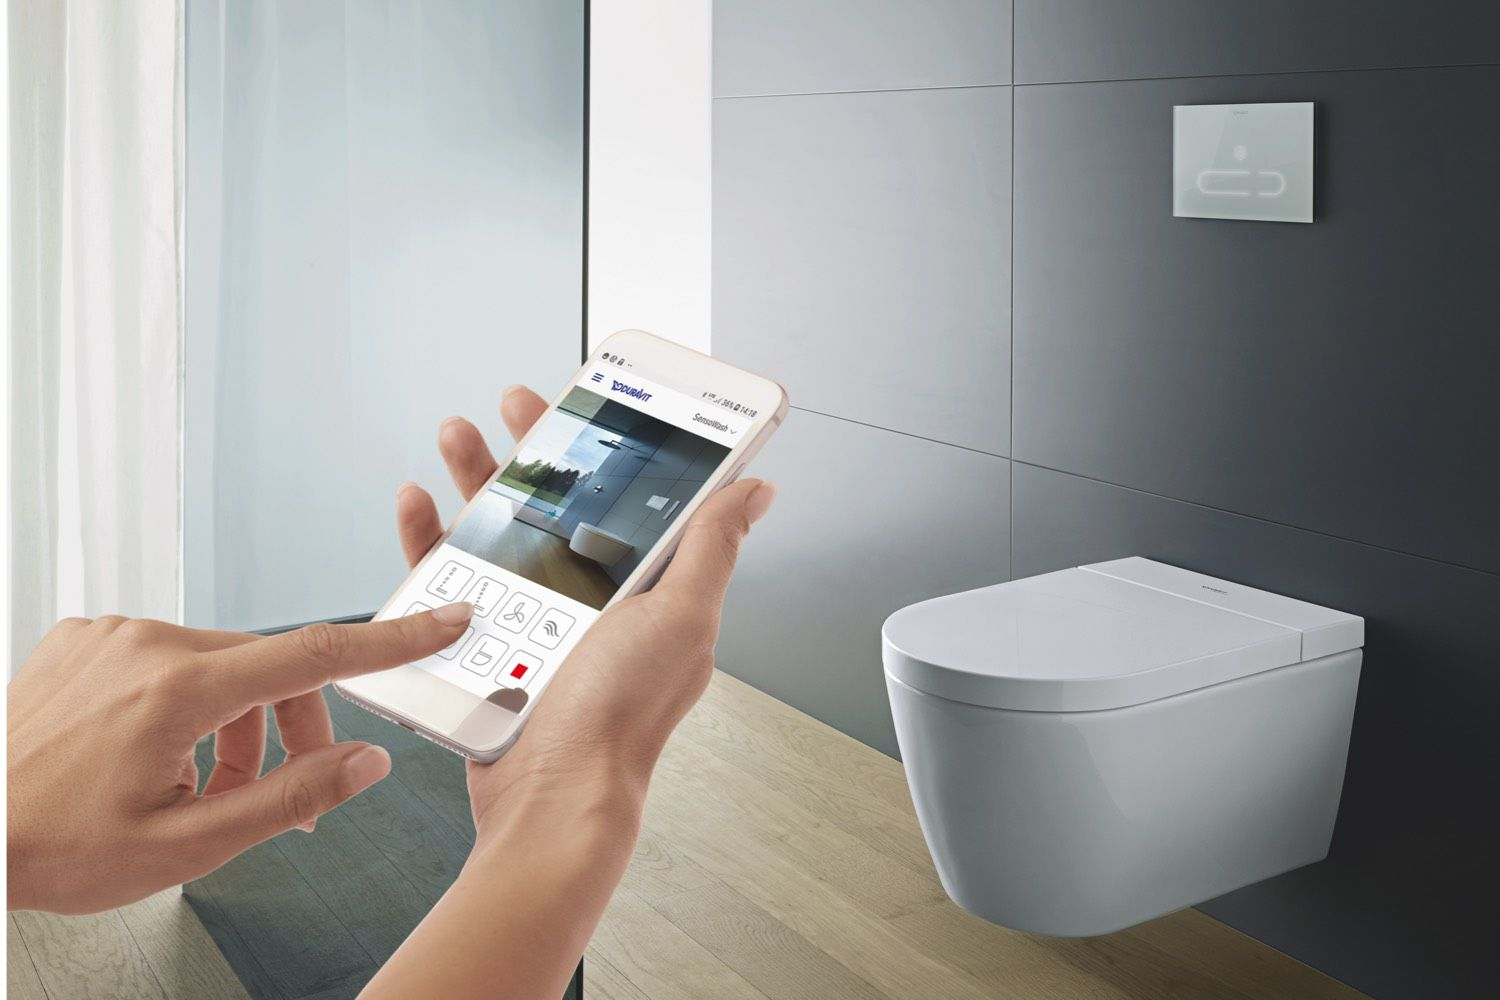 Who Needs an $8700 Toilet That Talks To Your Phone?